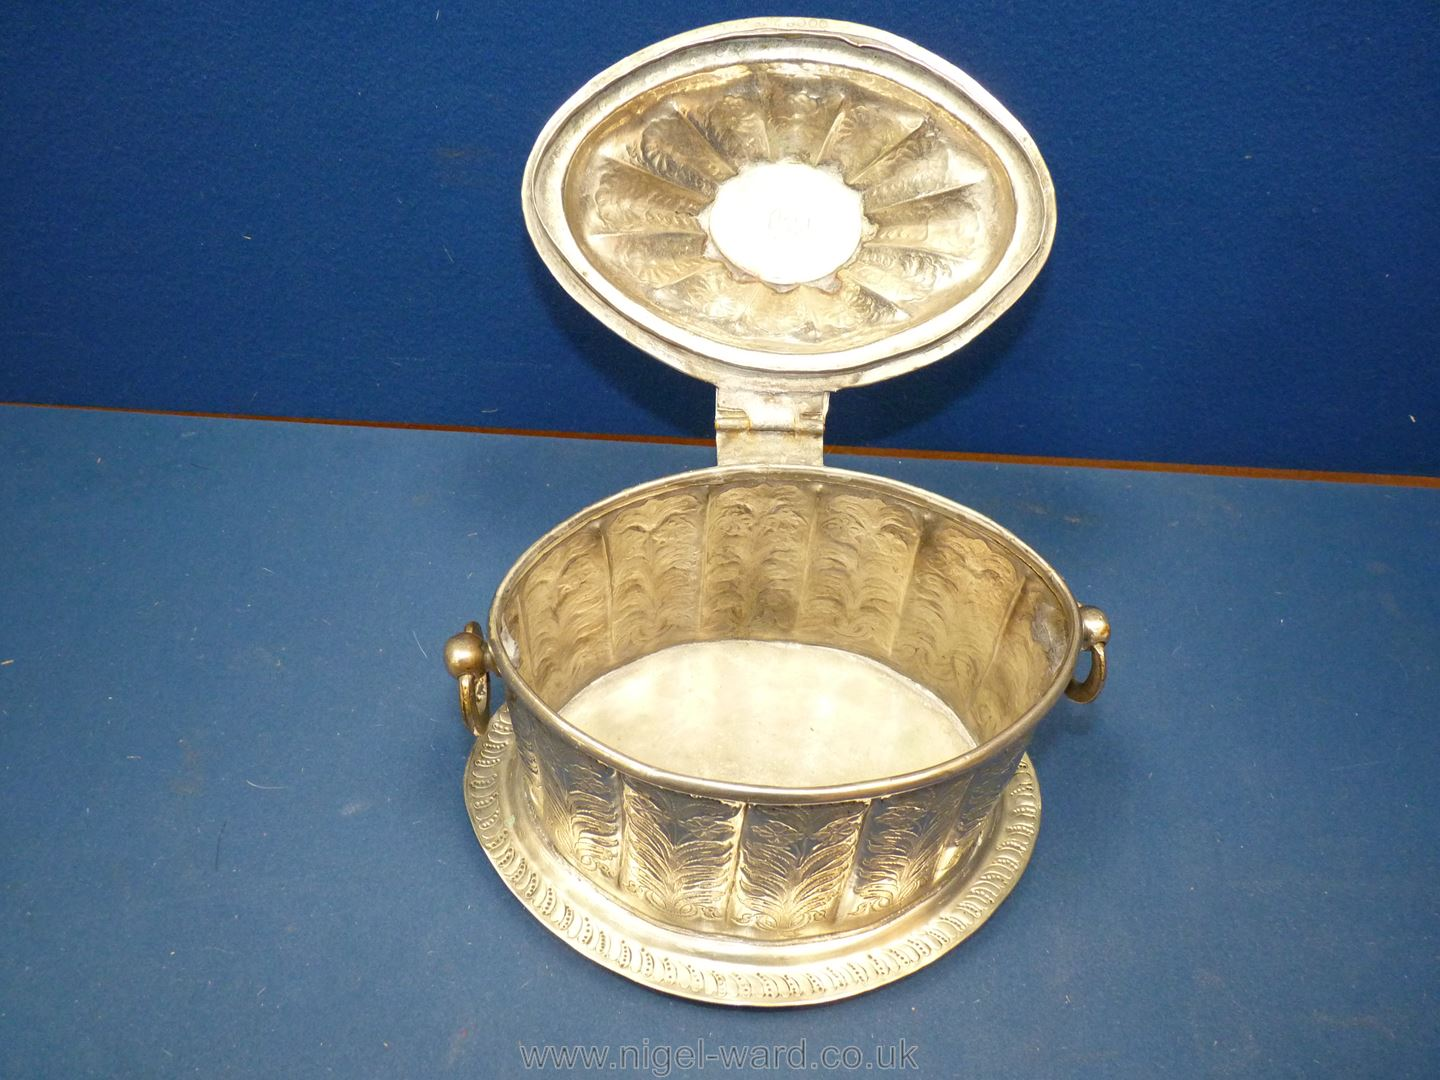 An Ottoman white metal tea caddy or box engraved with floral design, - Image 2 of 6